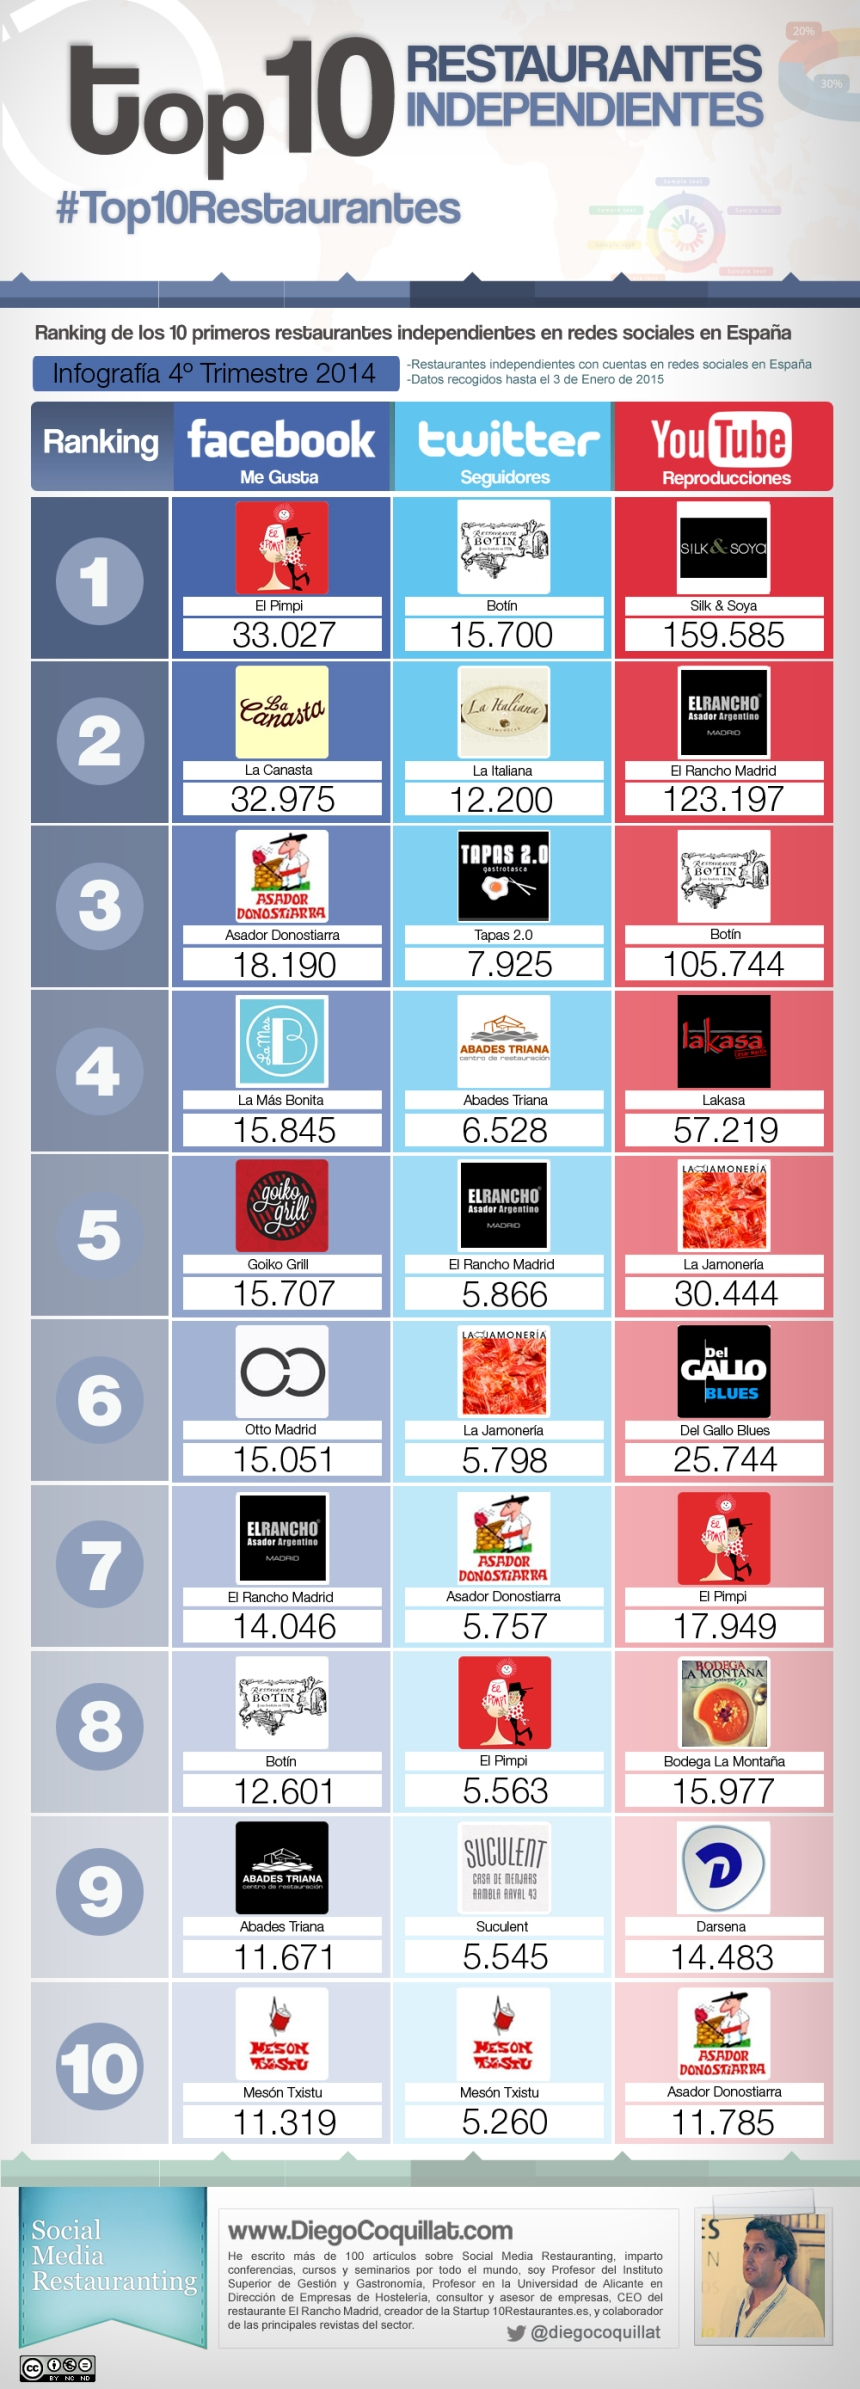 Top 10 restaurantes independientes en Redes Sociales España (4T/2014)